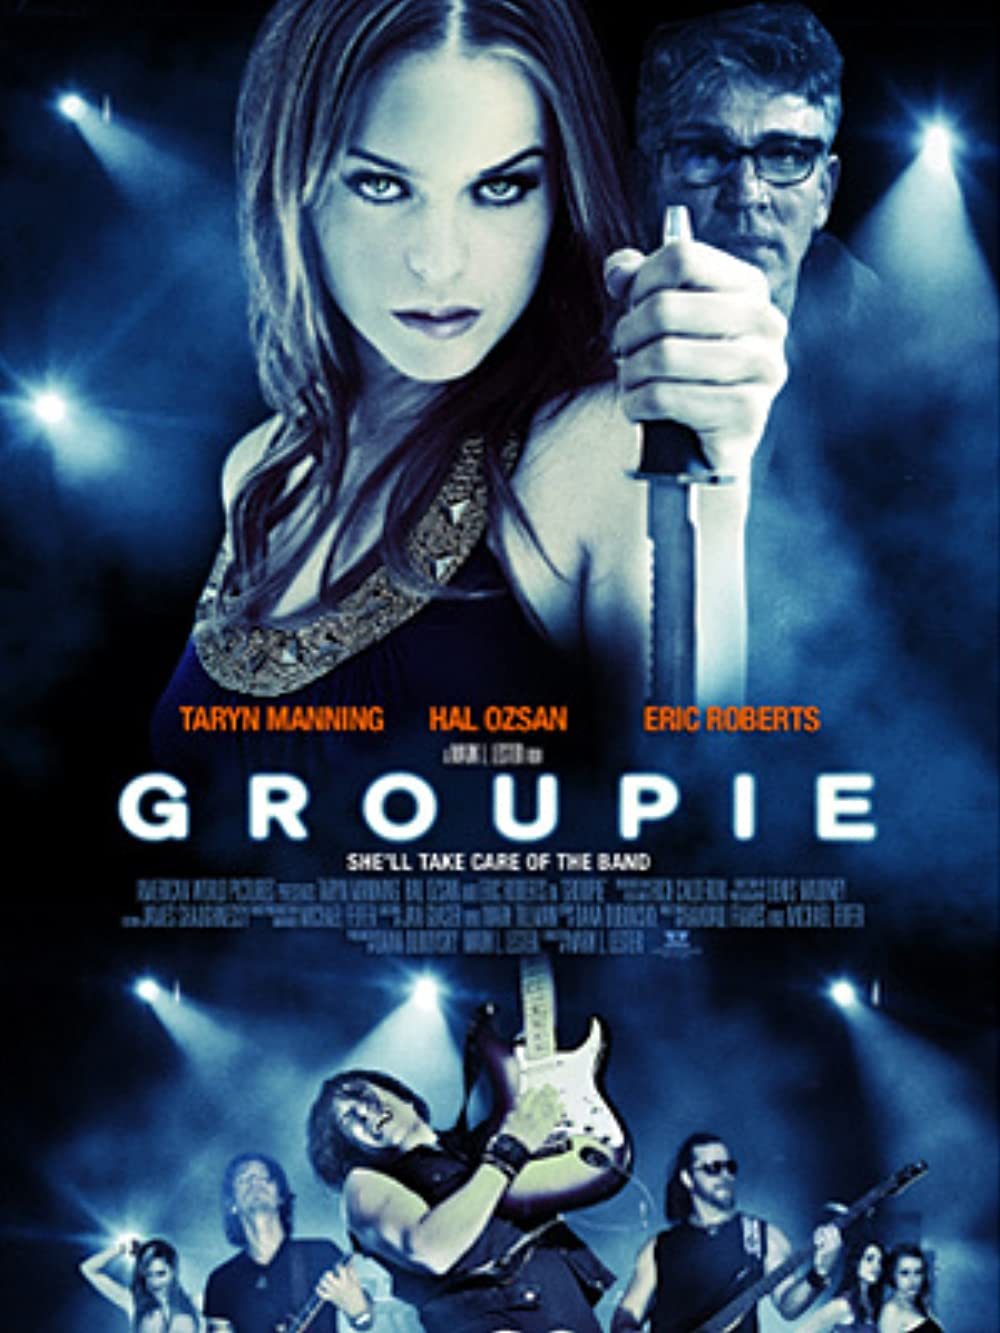 18+ Groupie 2021 Hindi Dubbed Hot Movie 720p UNCUT BluRay 700MB x264 AAC